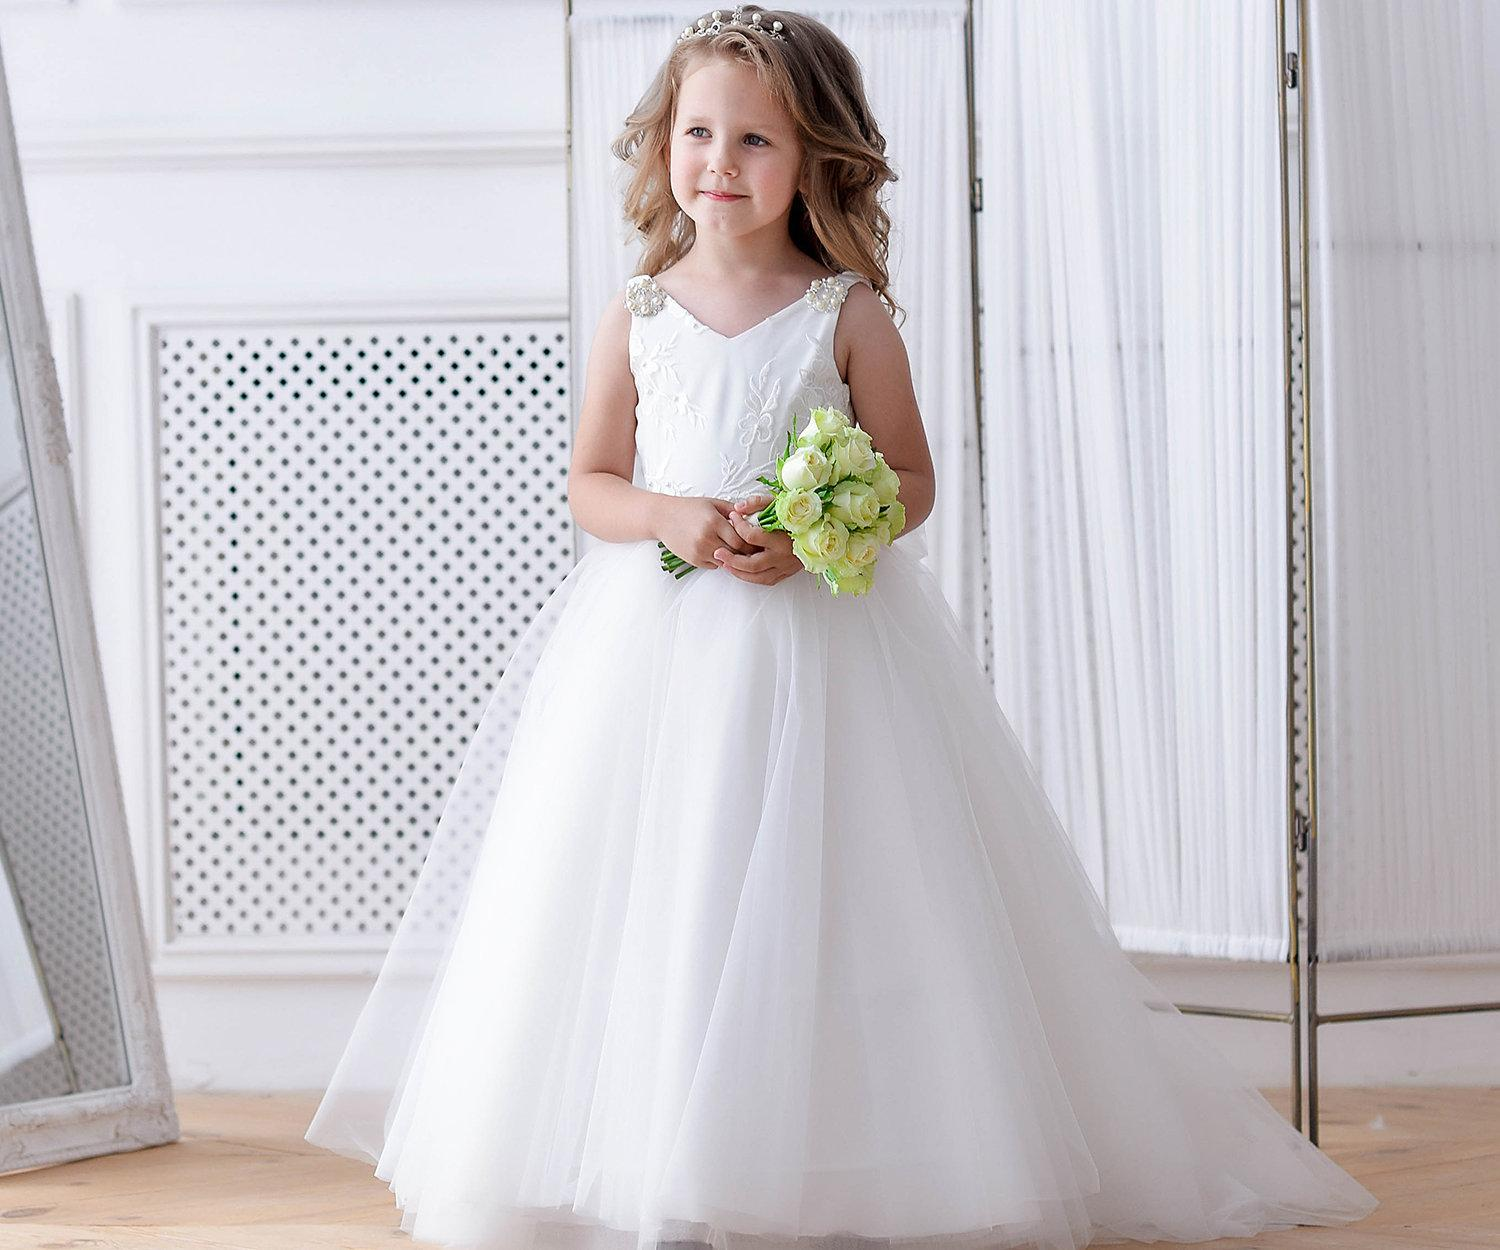 ac35f447d Ivory Flower Girl Dress Junior Bridesmaid Wedding Baby Girl Special  Occasion Baby Party Dress Birthday Toddler Lace Formal Occasion Eggplant  Flower Girl ...